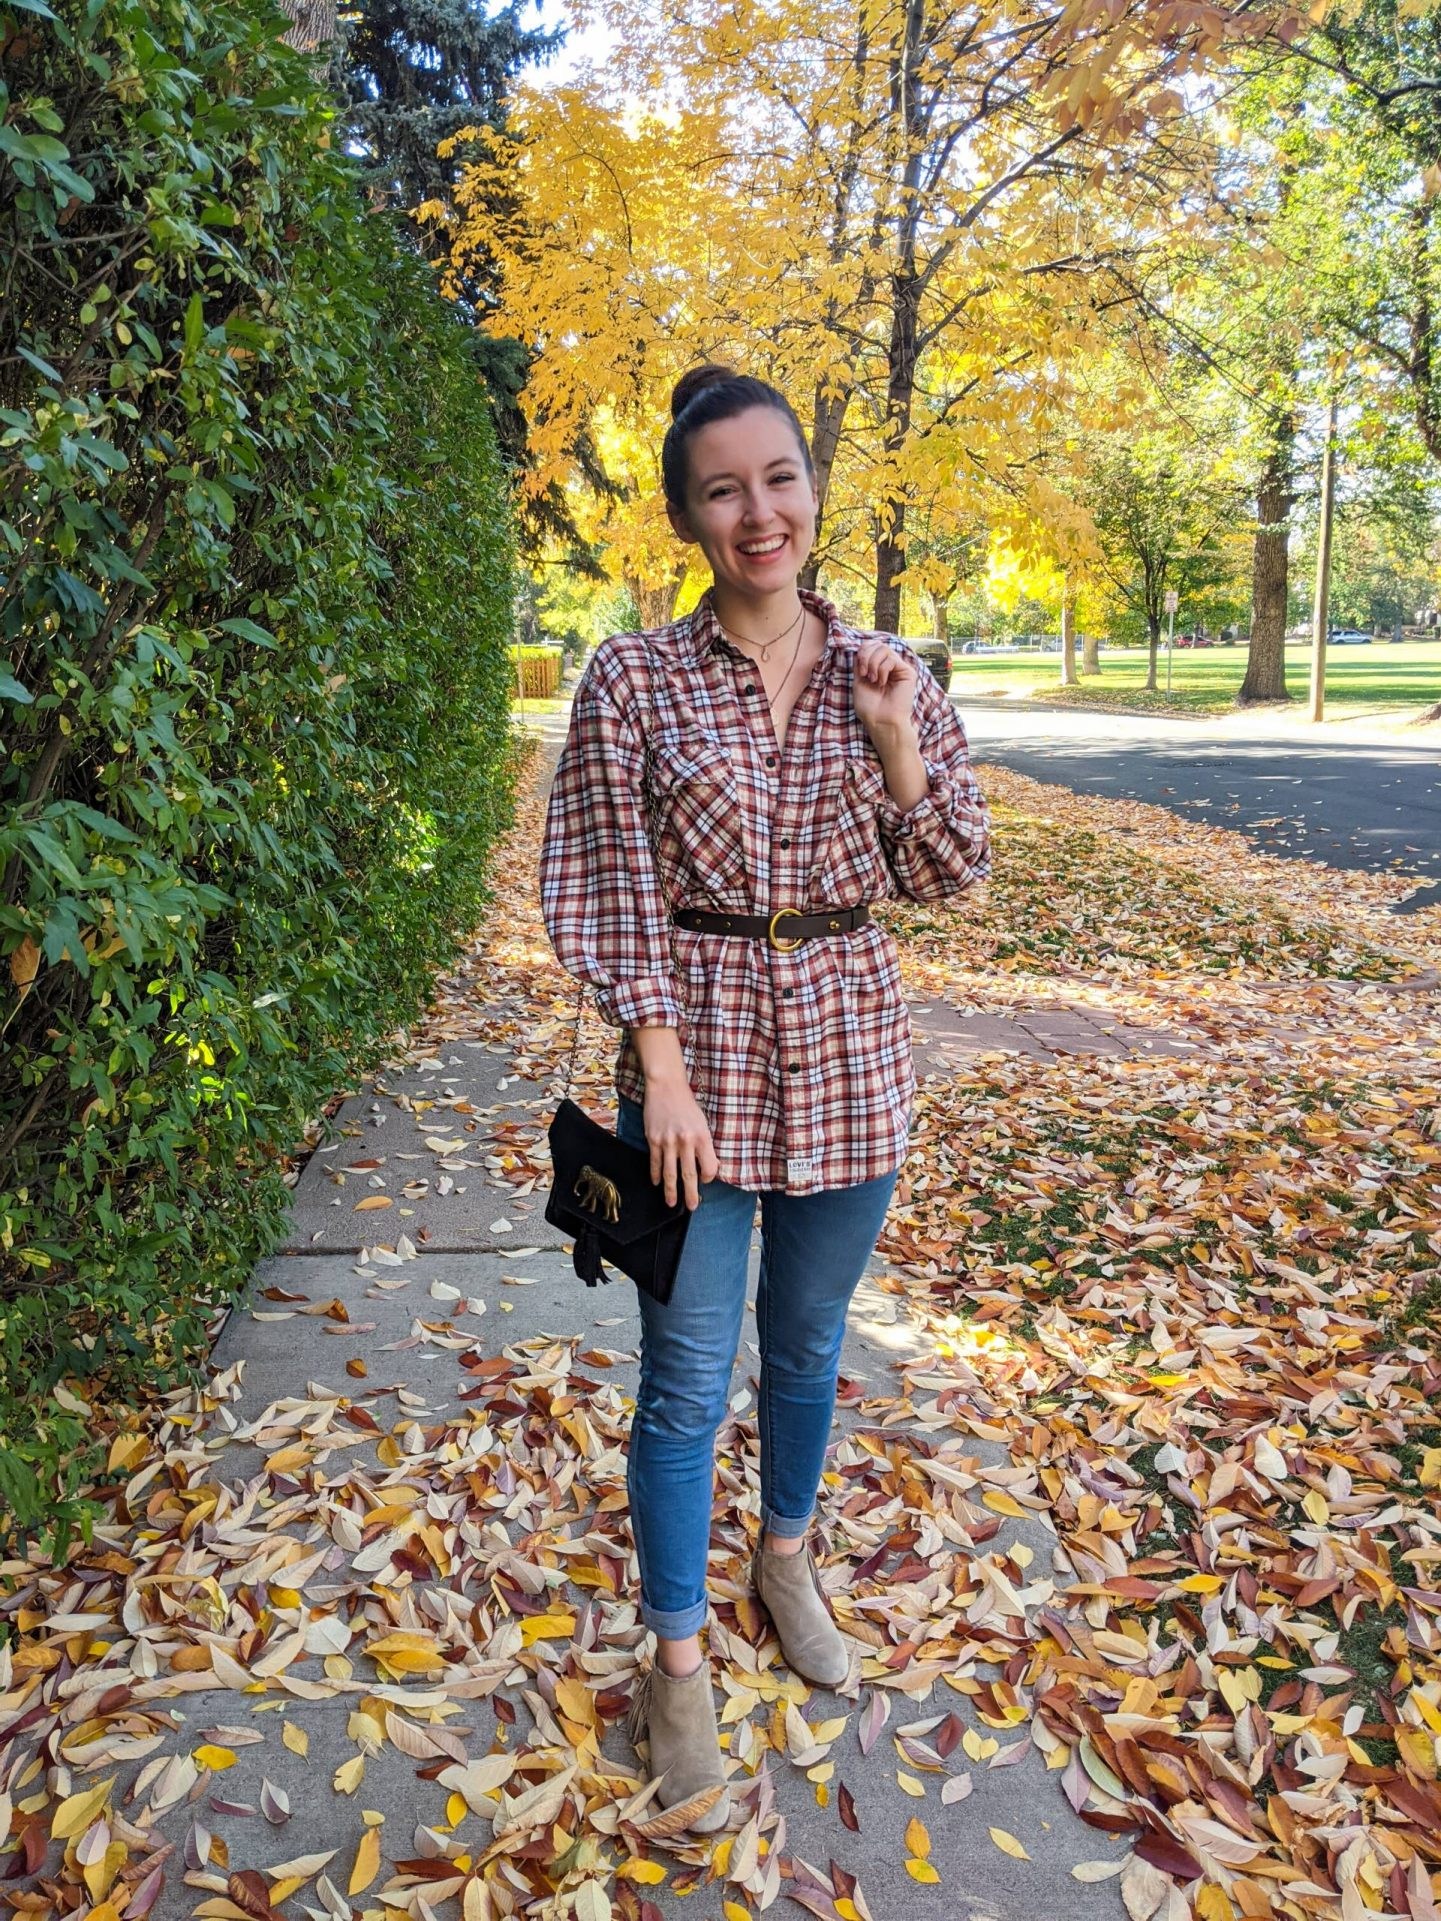 Check Out Preloved Fashion - The Thrifty Six October Challenge, Grace of Graceful Rags